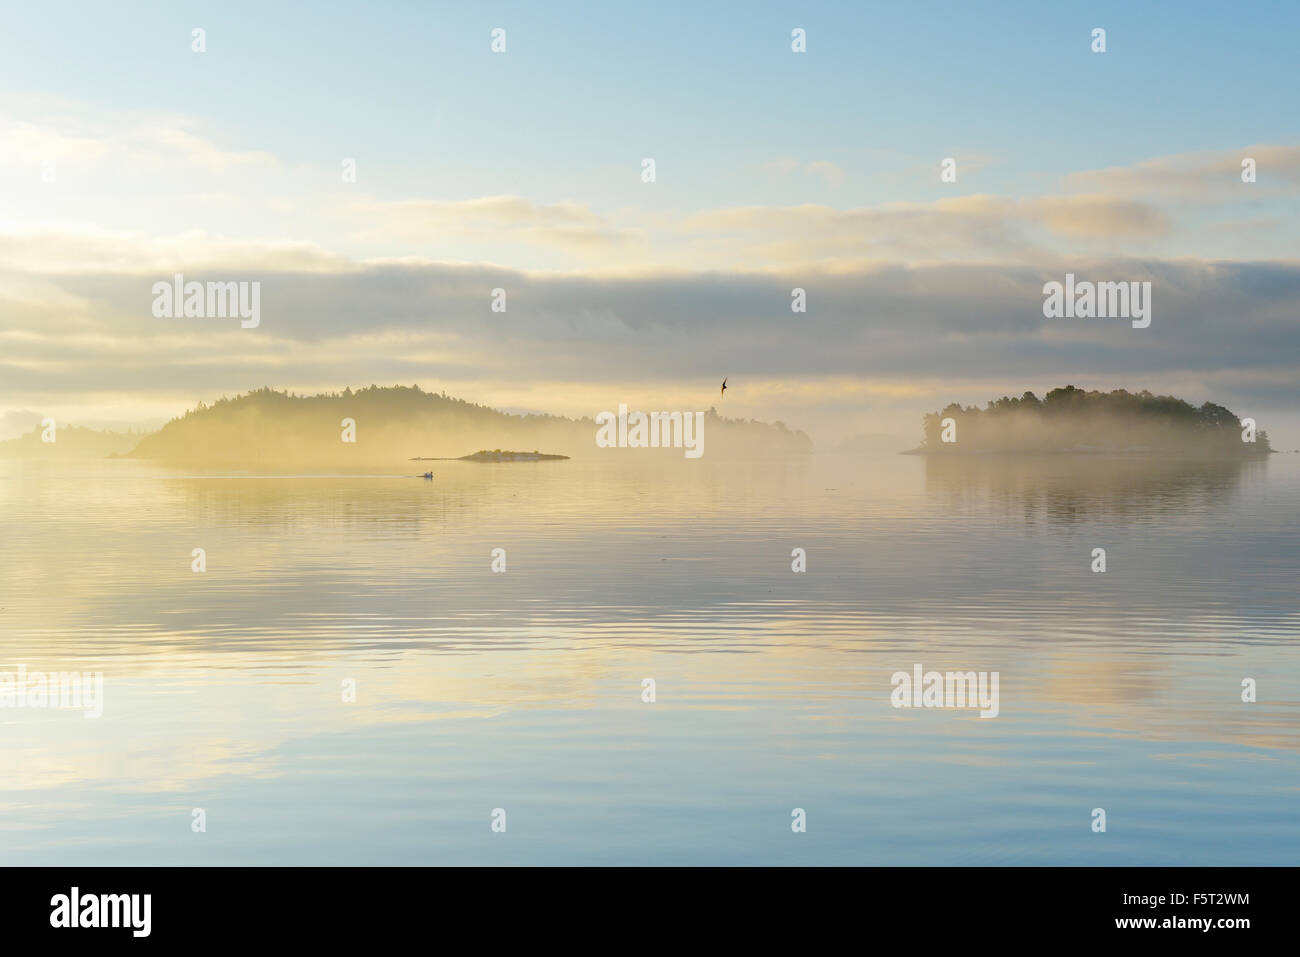 Sweden, Stockholm Archipelago, Uppland, Lidingo, View of sea and islands at dawn Stock Photo